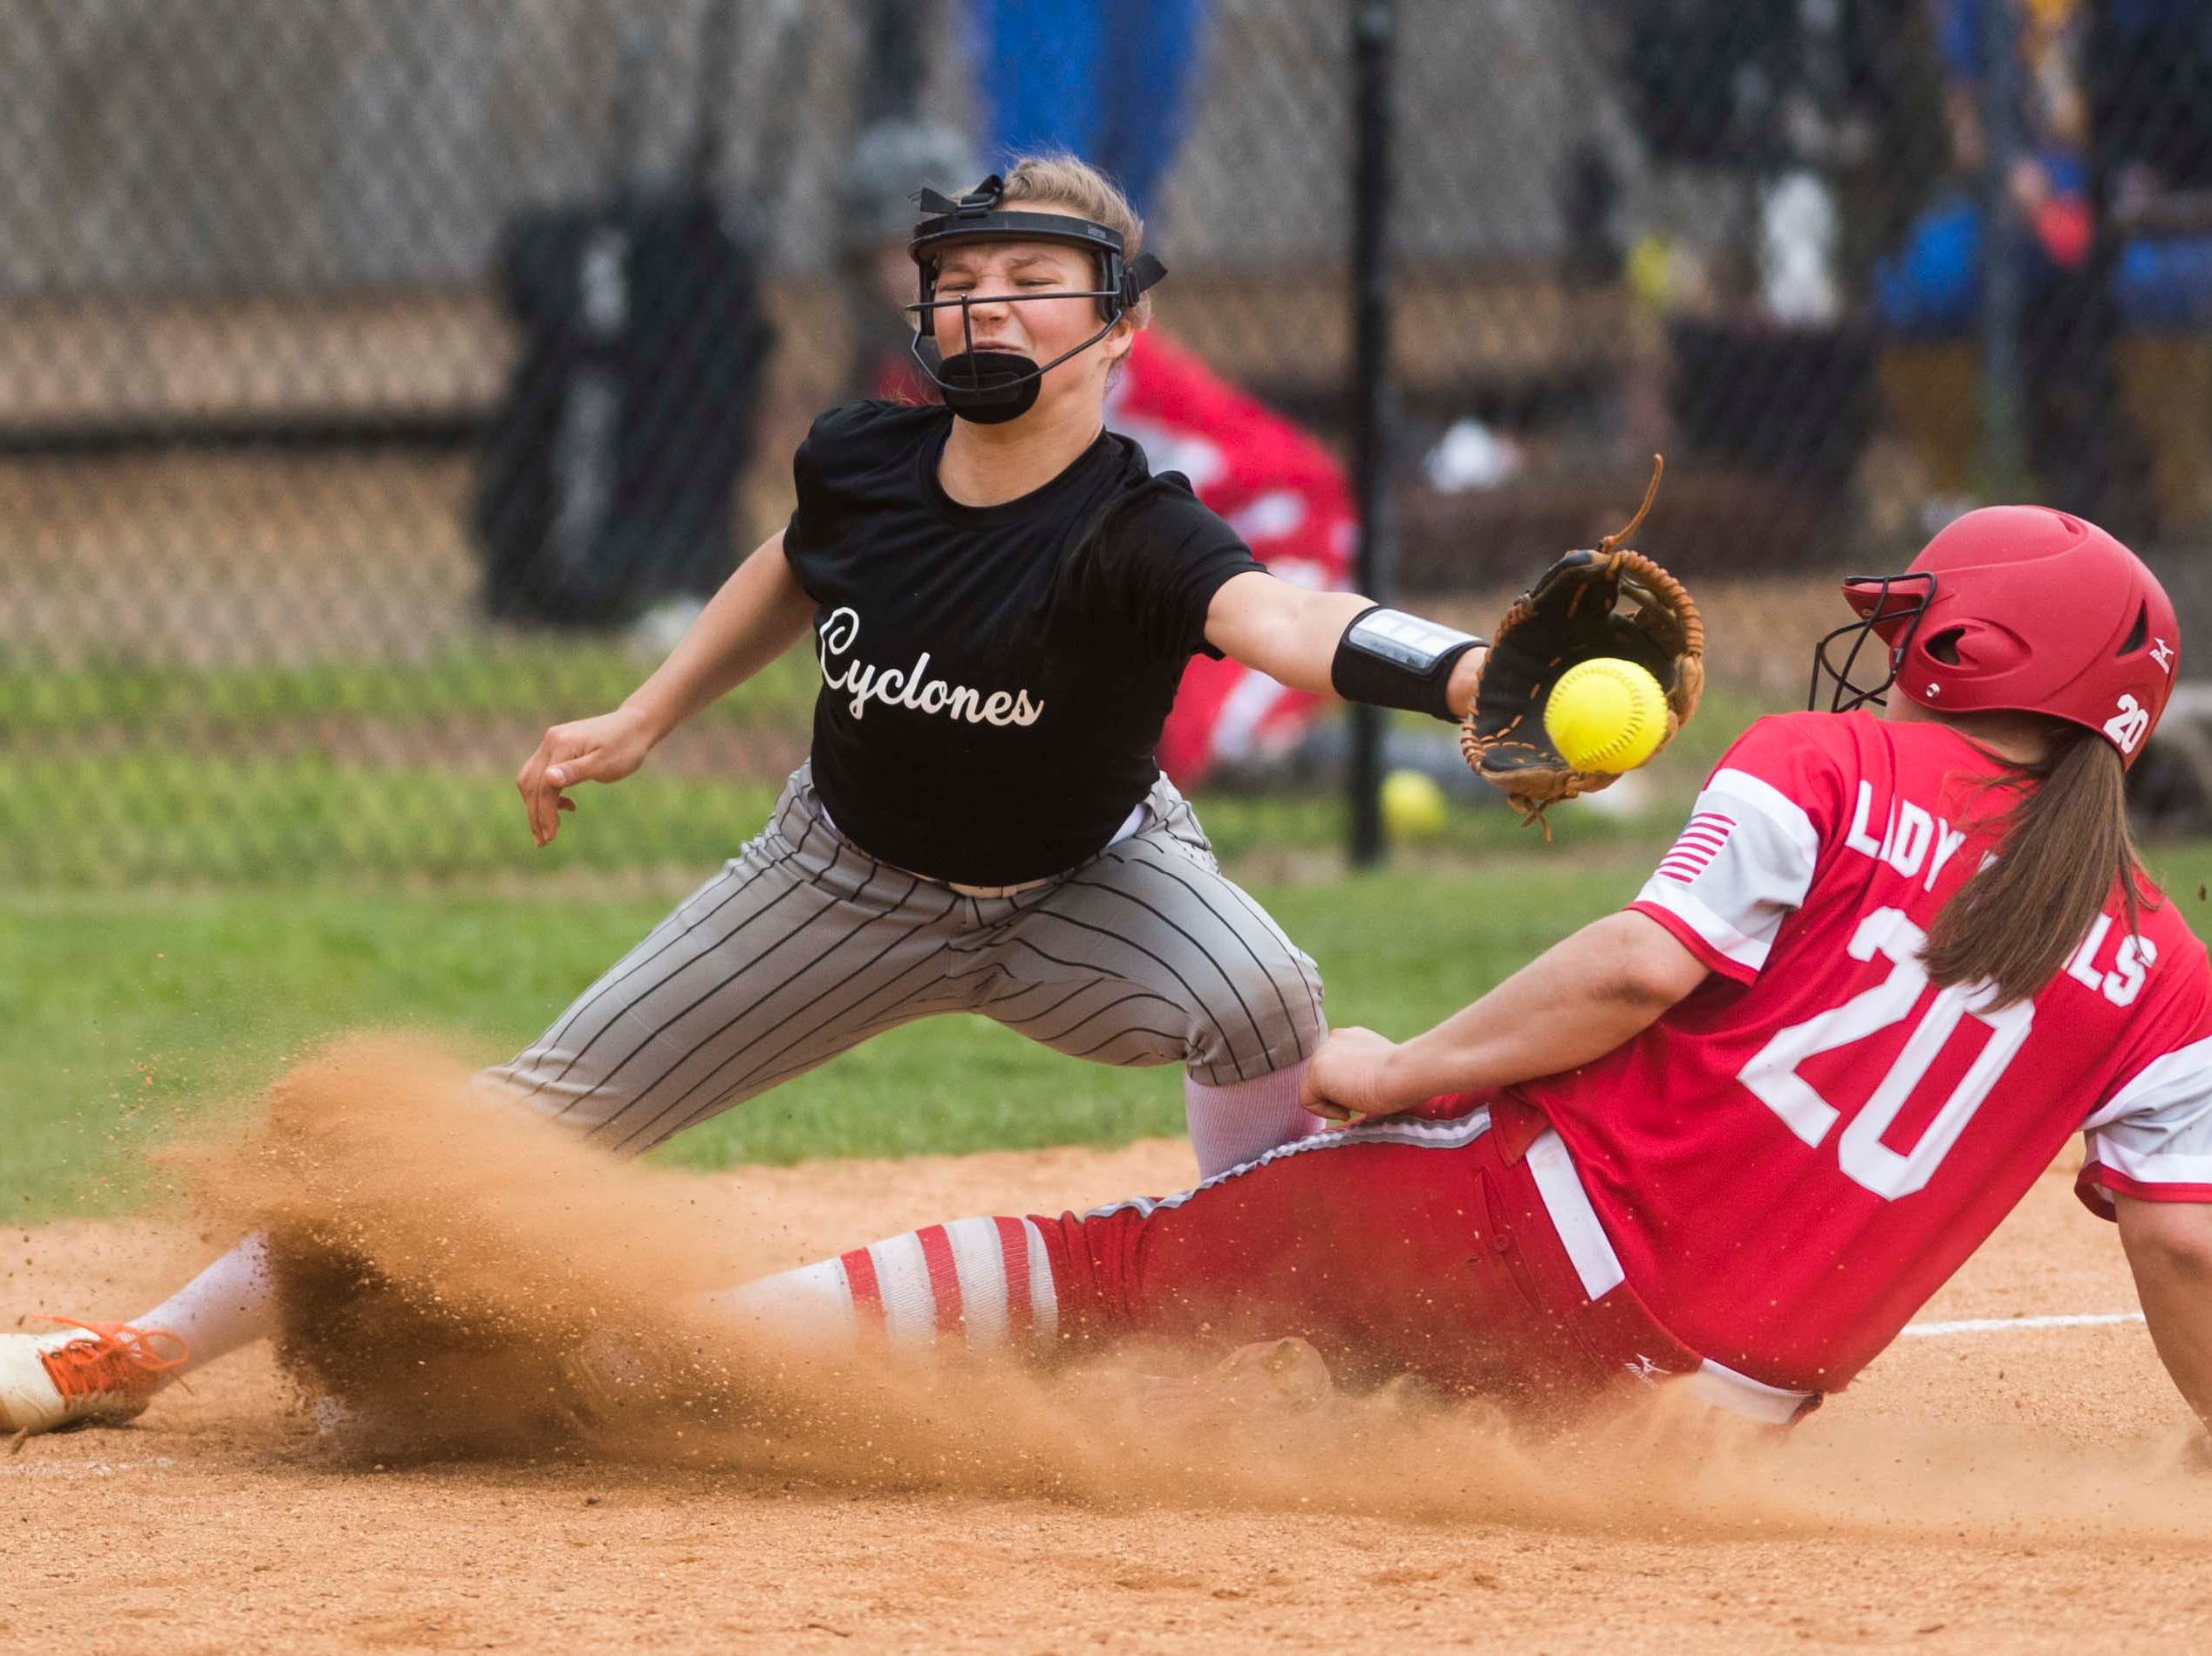 Elizabethton's Maggie Johnson (17) attempts to tag out Halls' (20) during a high school softball game between Halls and Elizabethton at Halls Friday, April 12, 2019. Halls defeated Elizabethton.